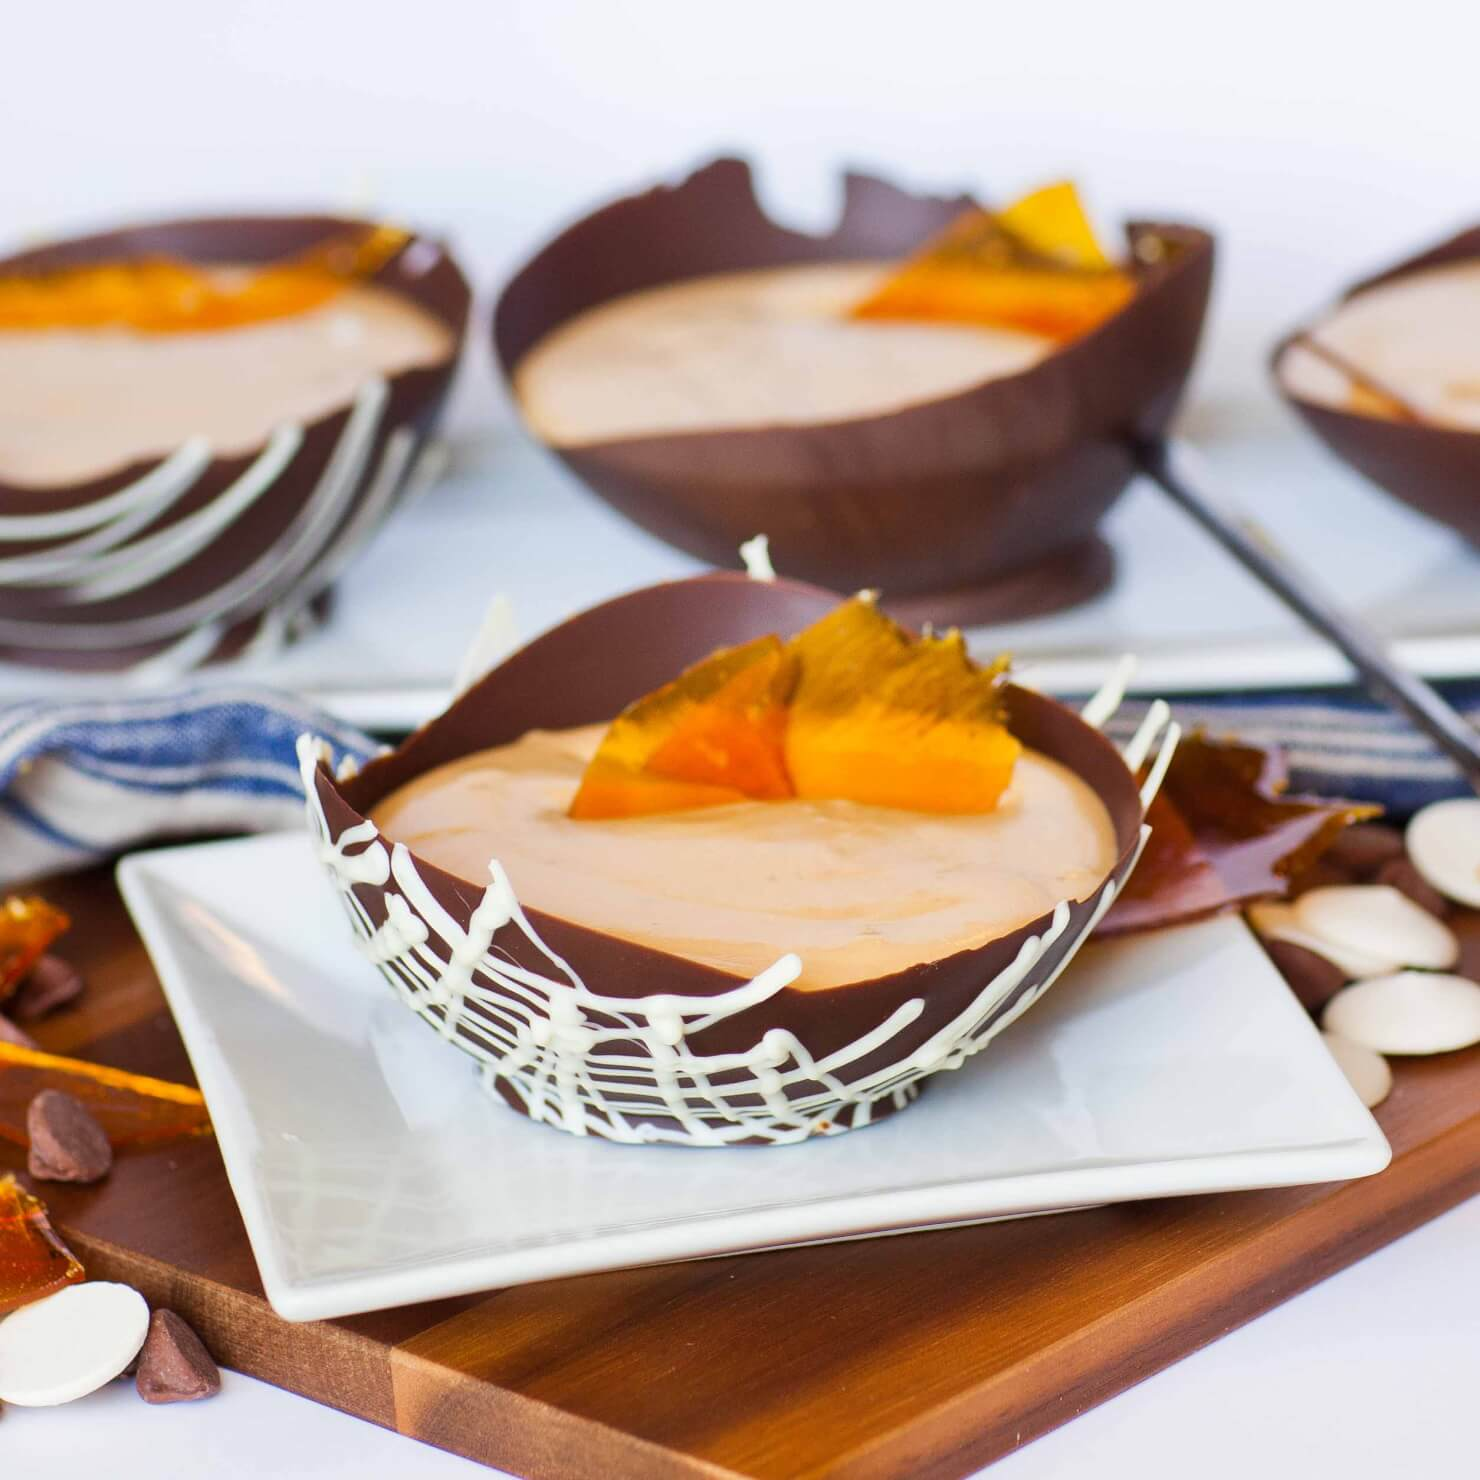 Caramel mousse in chocolate bowls